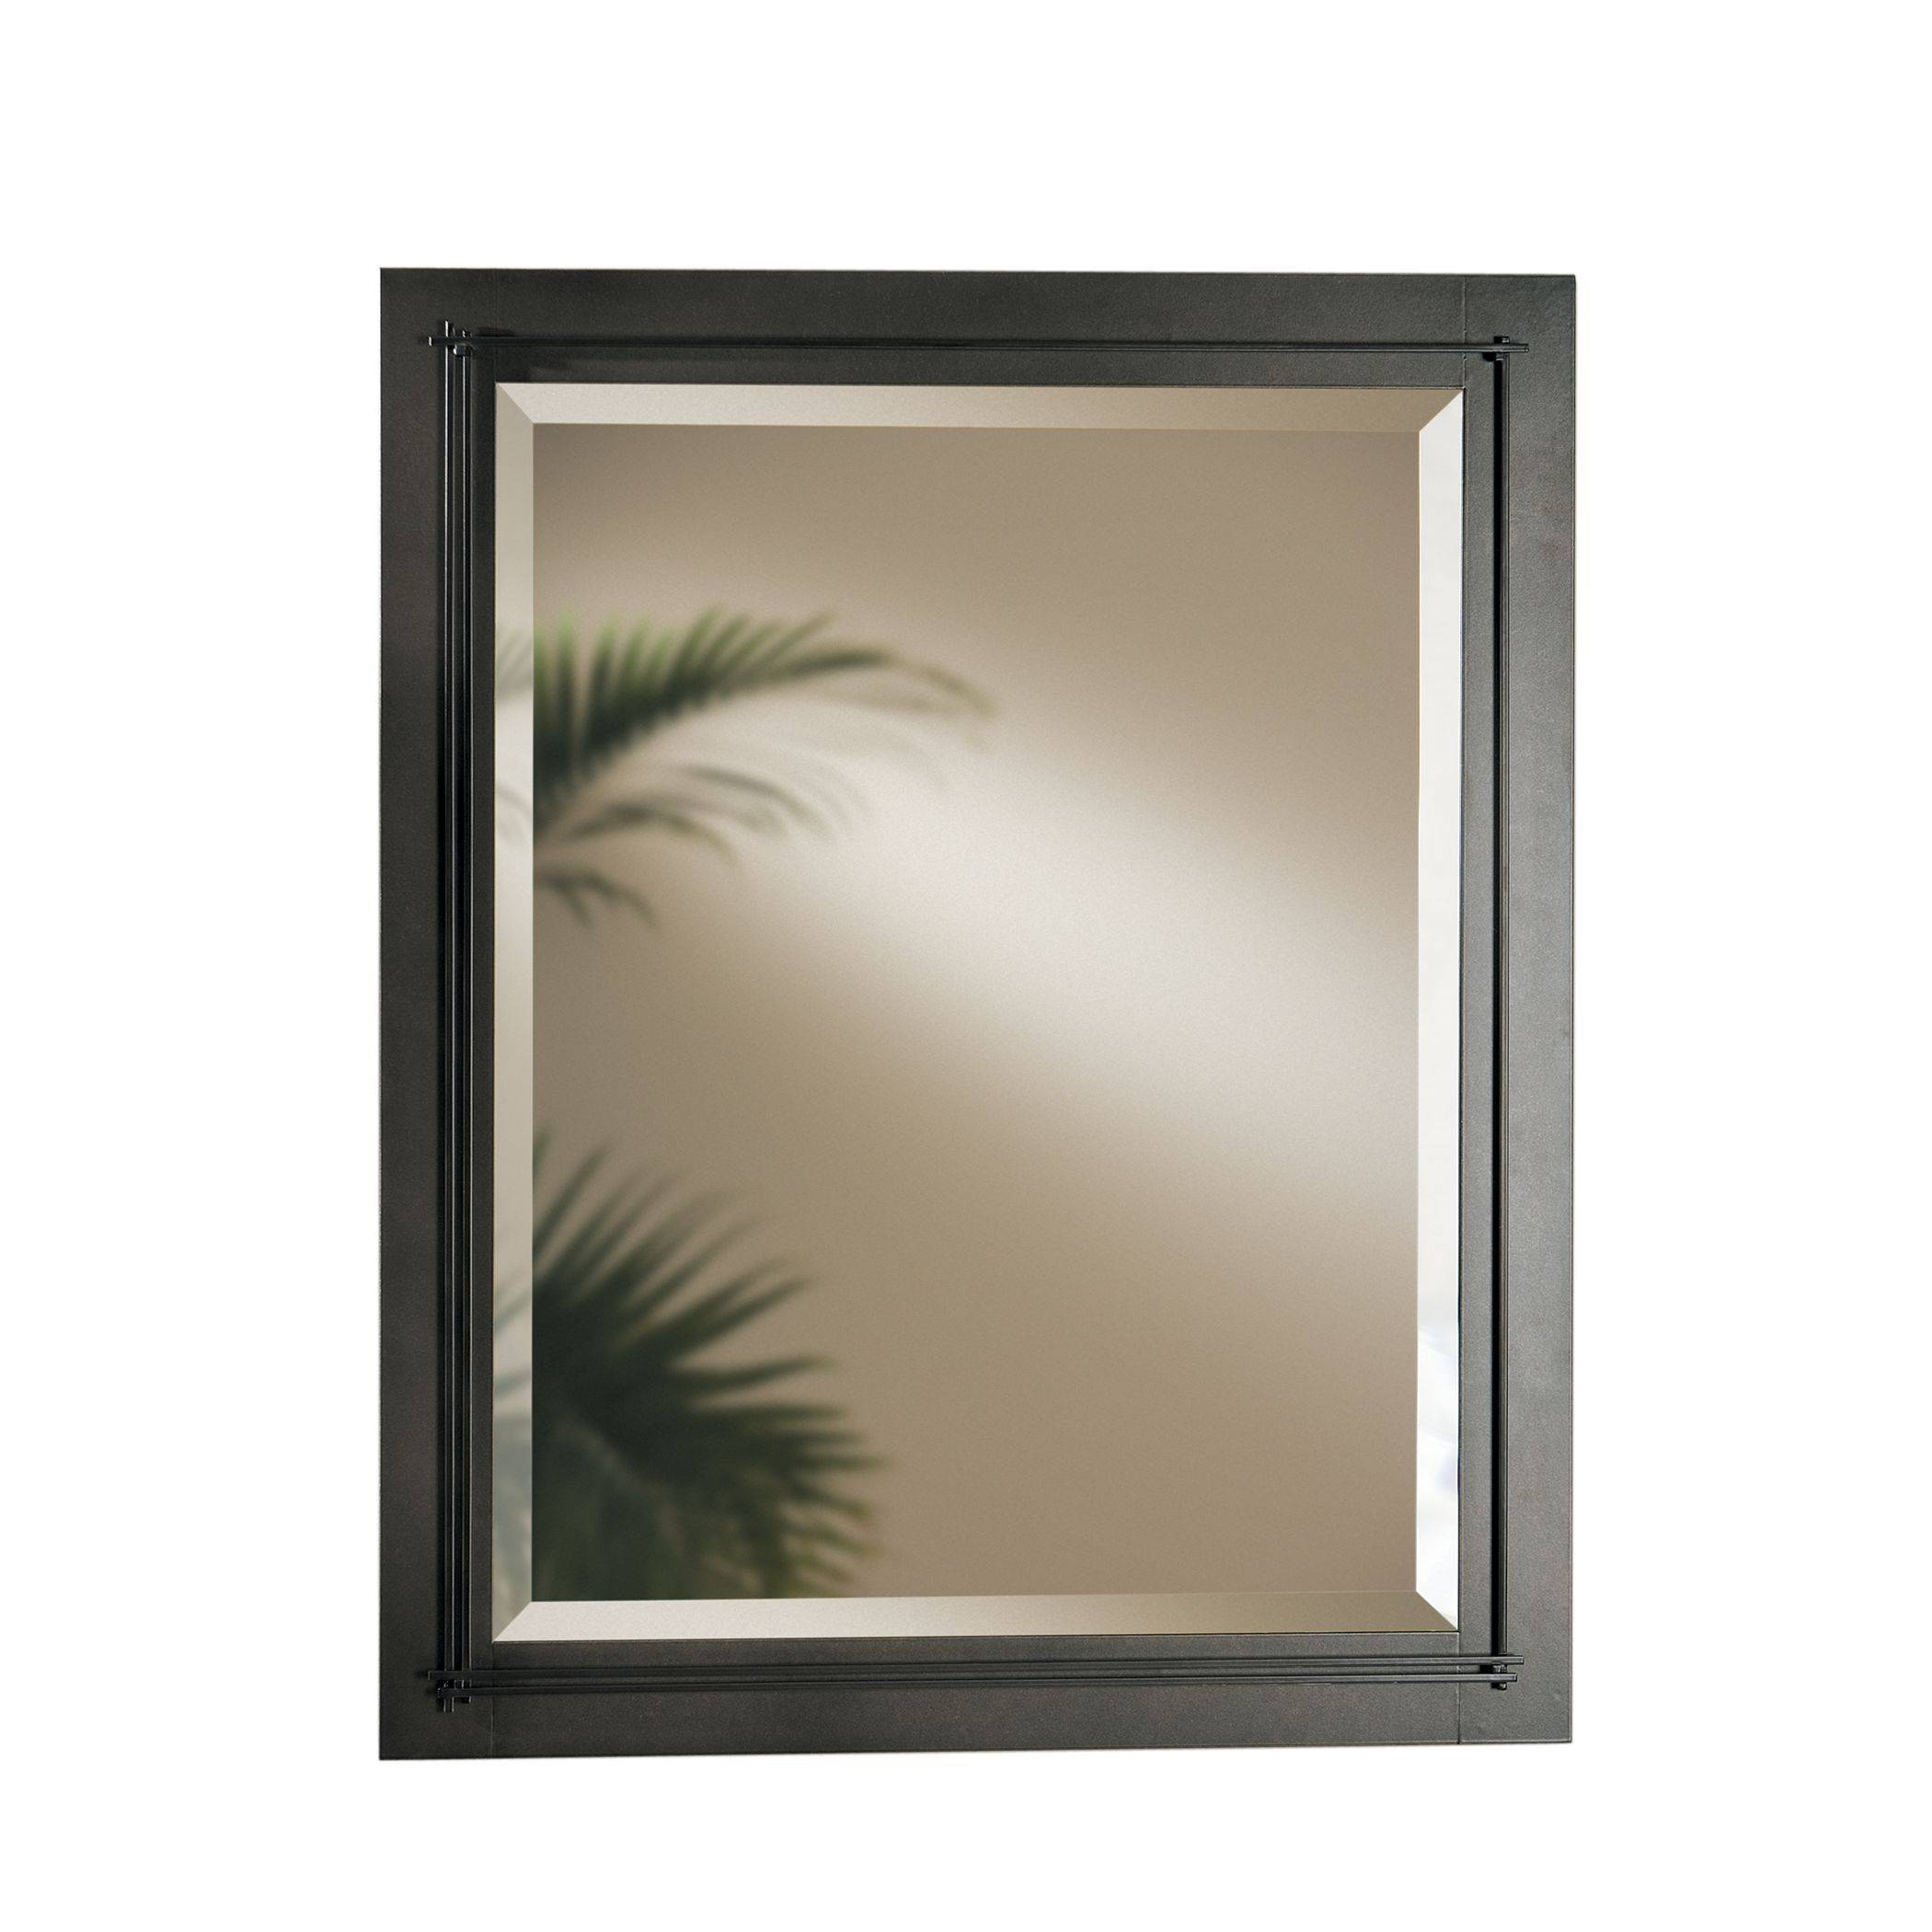 Metra Large Beveled Mirror – Hubbardton Forge throughout Large Bronze Mirrors (Image 8 of 15)